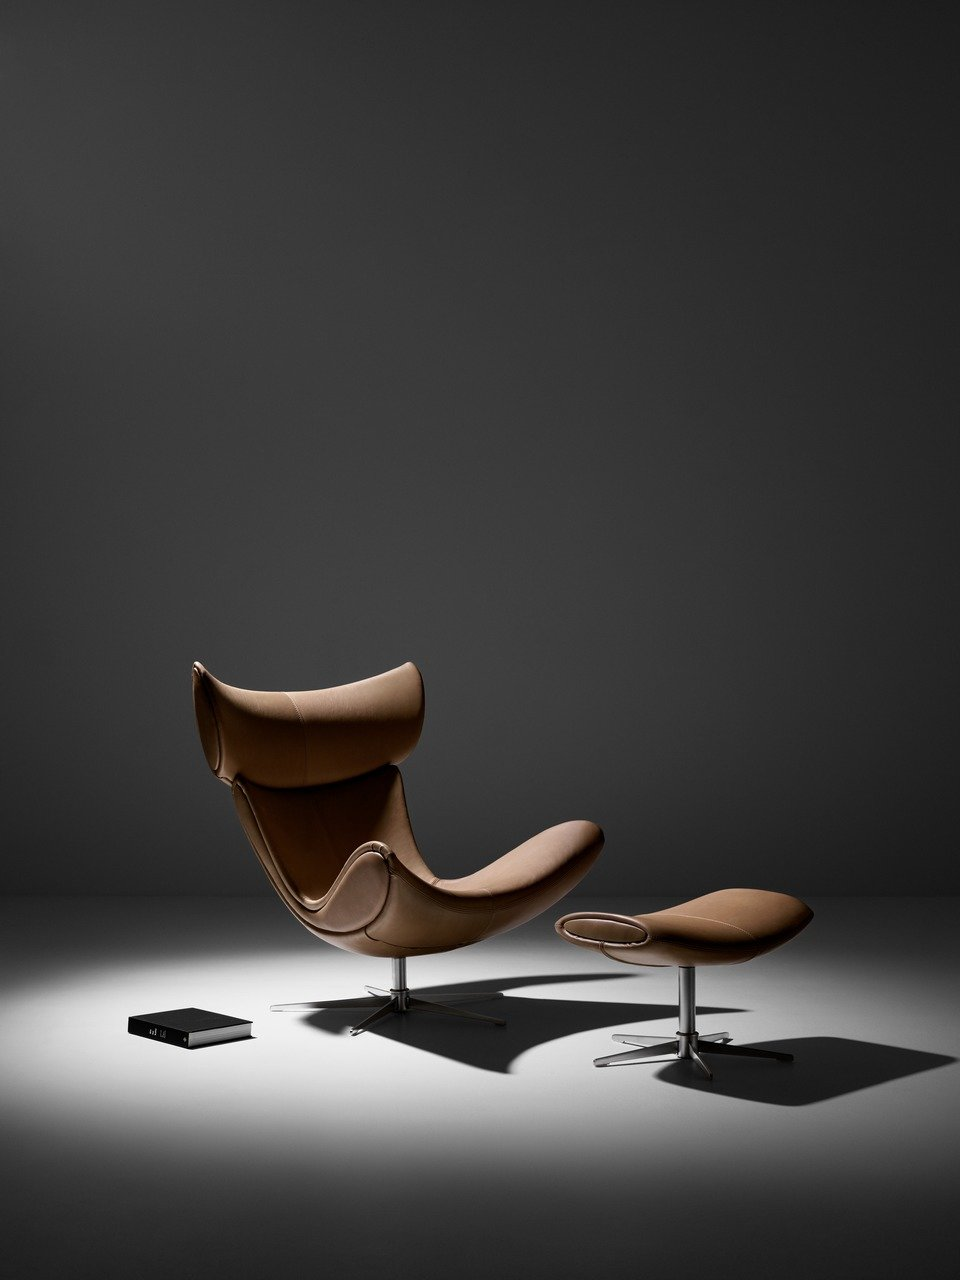 23133_Imola chair with swivel function_10002_4.jpg